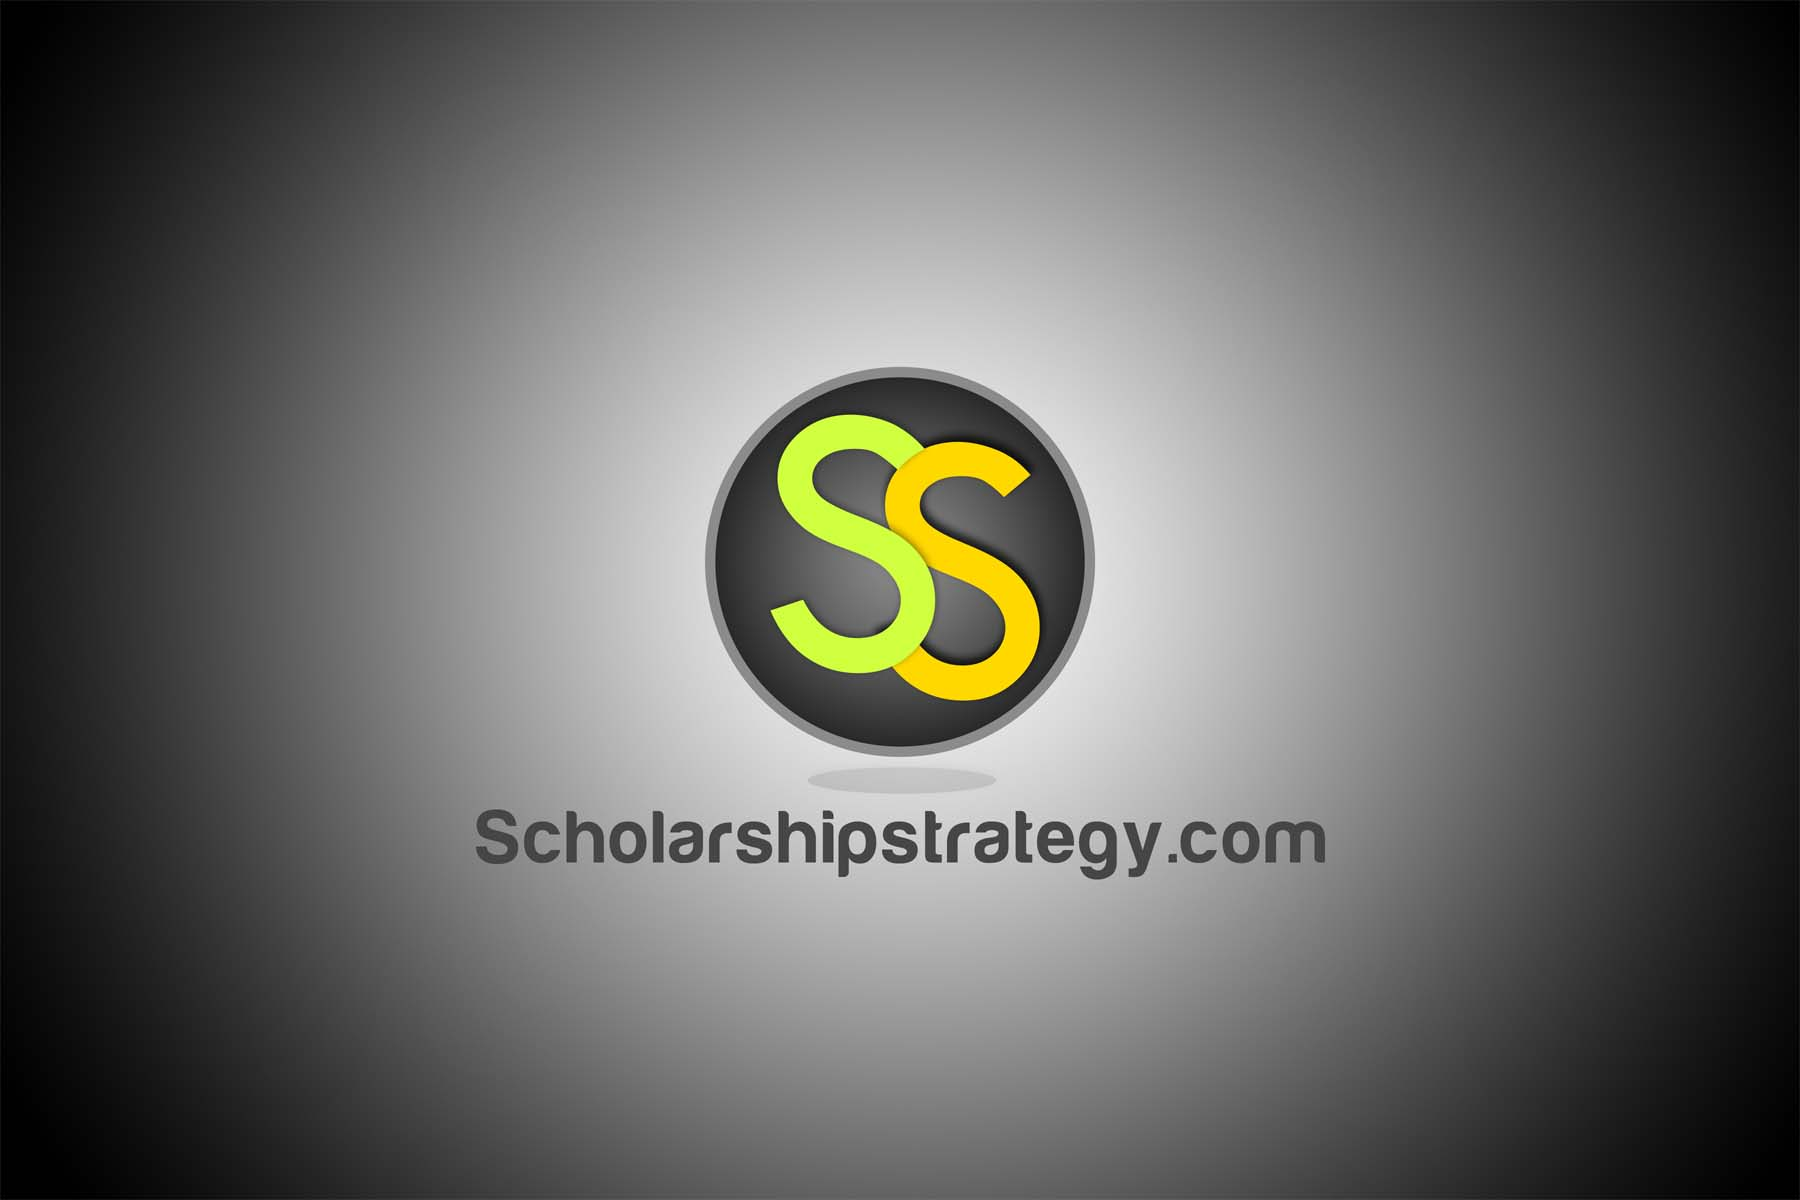 Logo Design by Private User - Entry No. 134 in the Logo Design Contest Captivating Logo Design for Scholarshipstrategy.com.